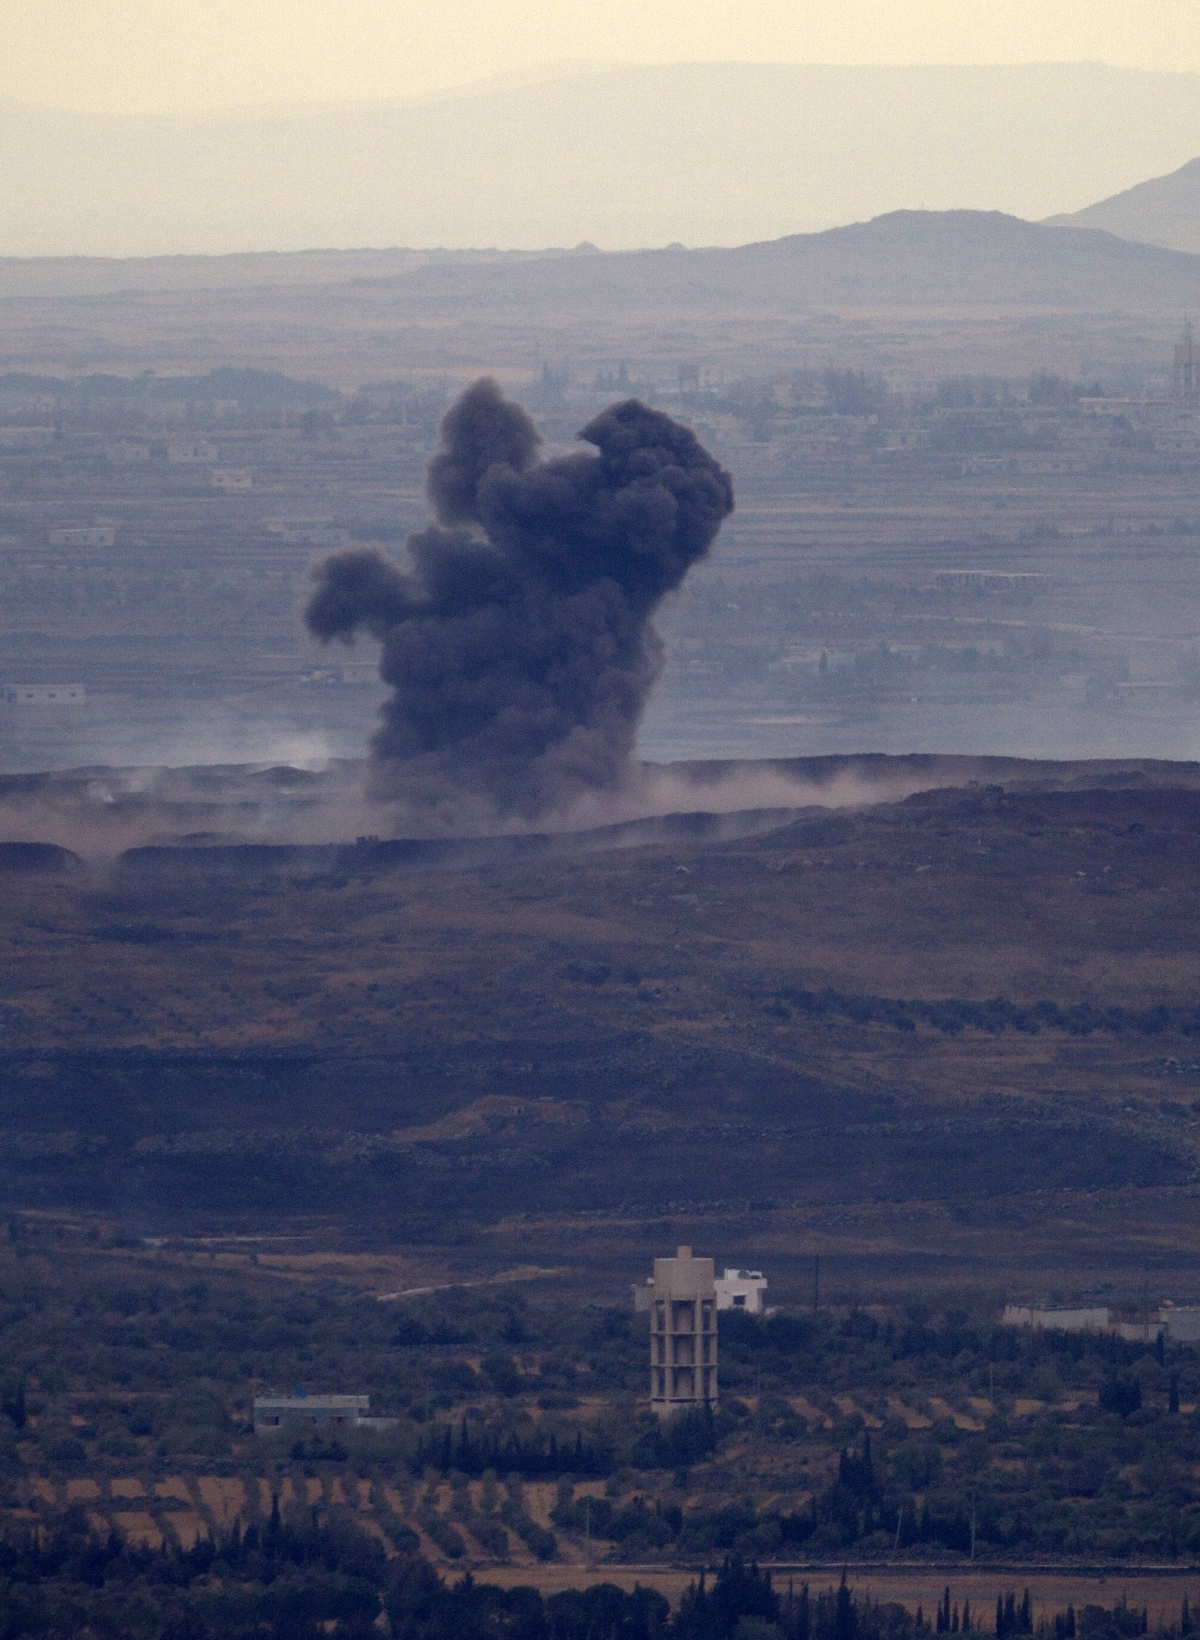 Syrian government forces shell rebel positions